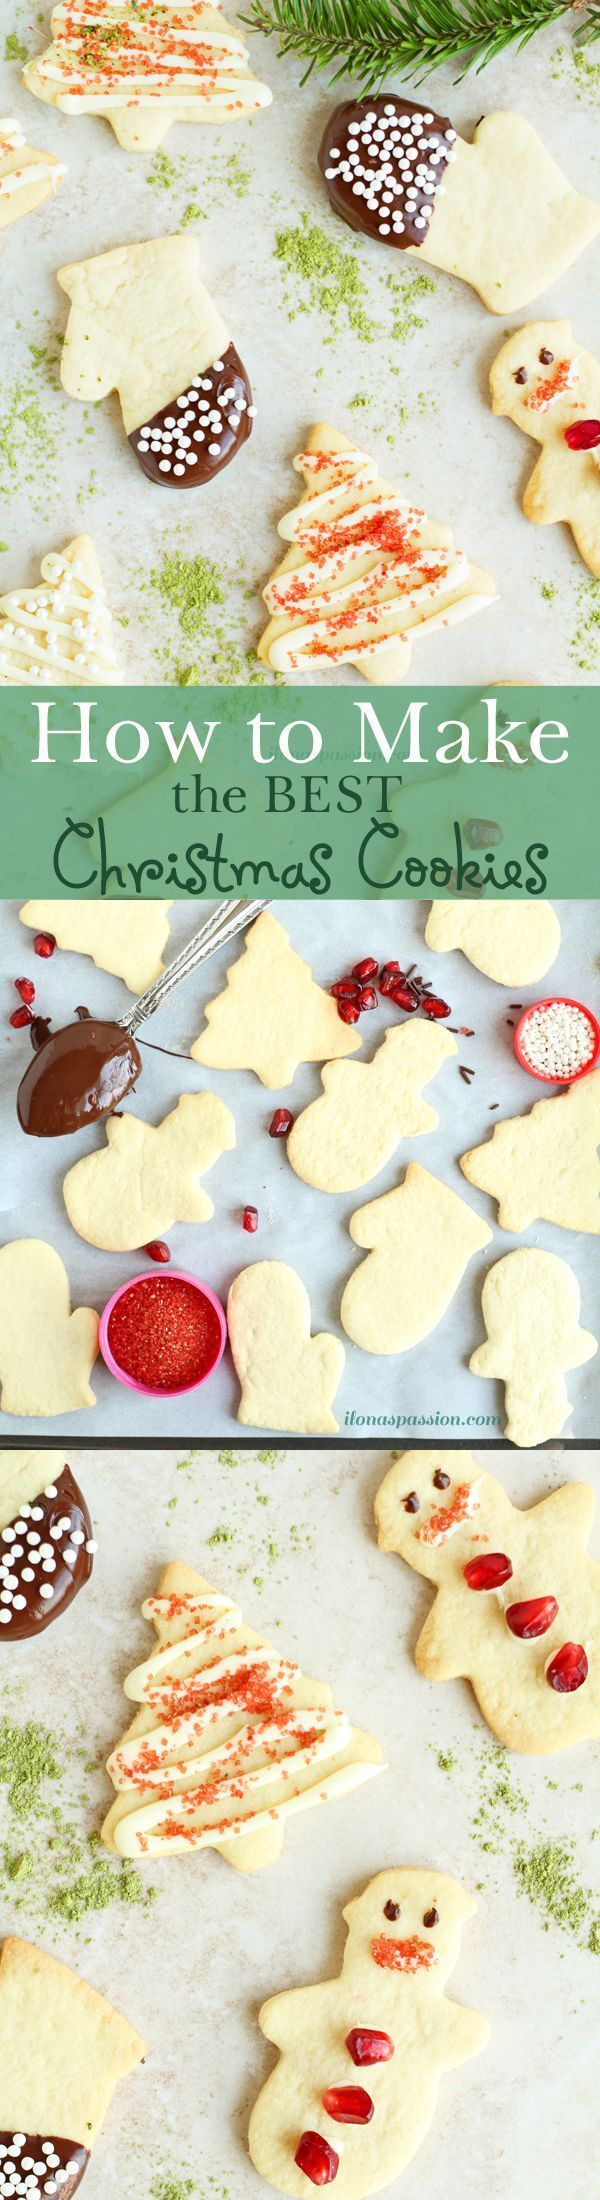 how to make christmas sugar cookies from scratch